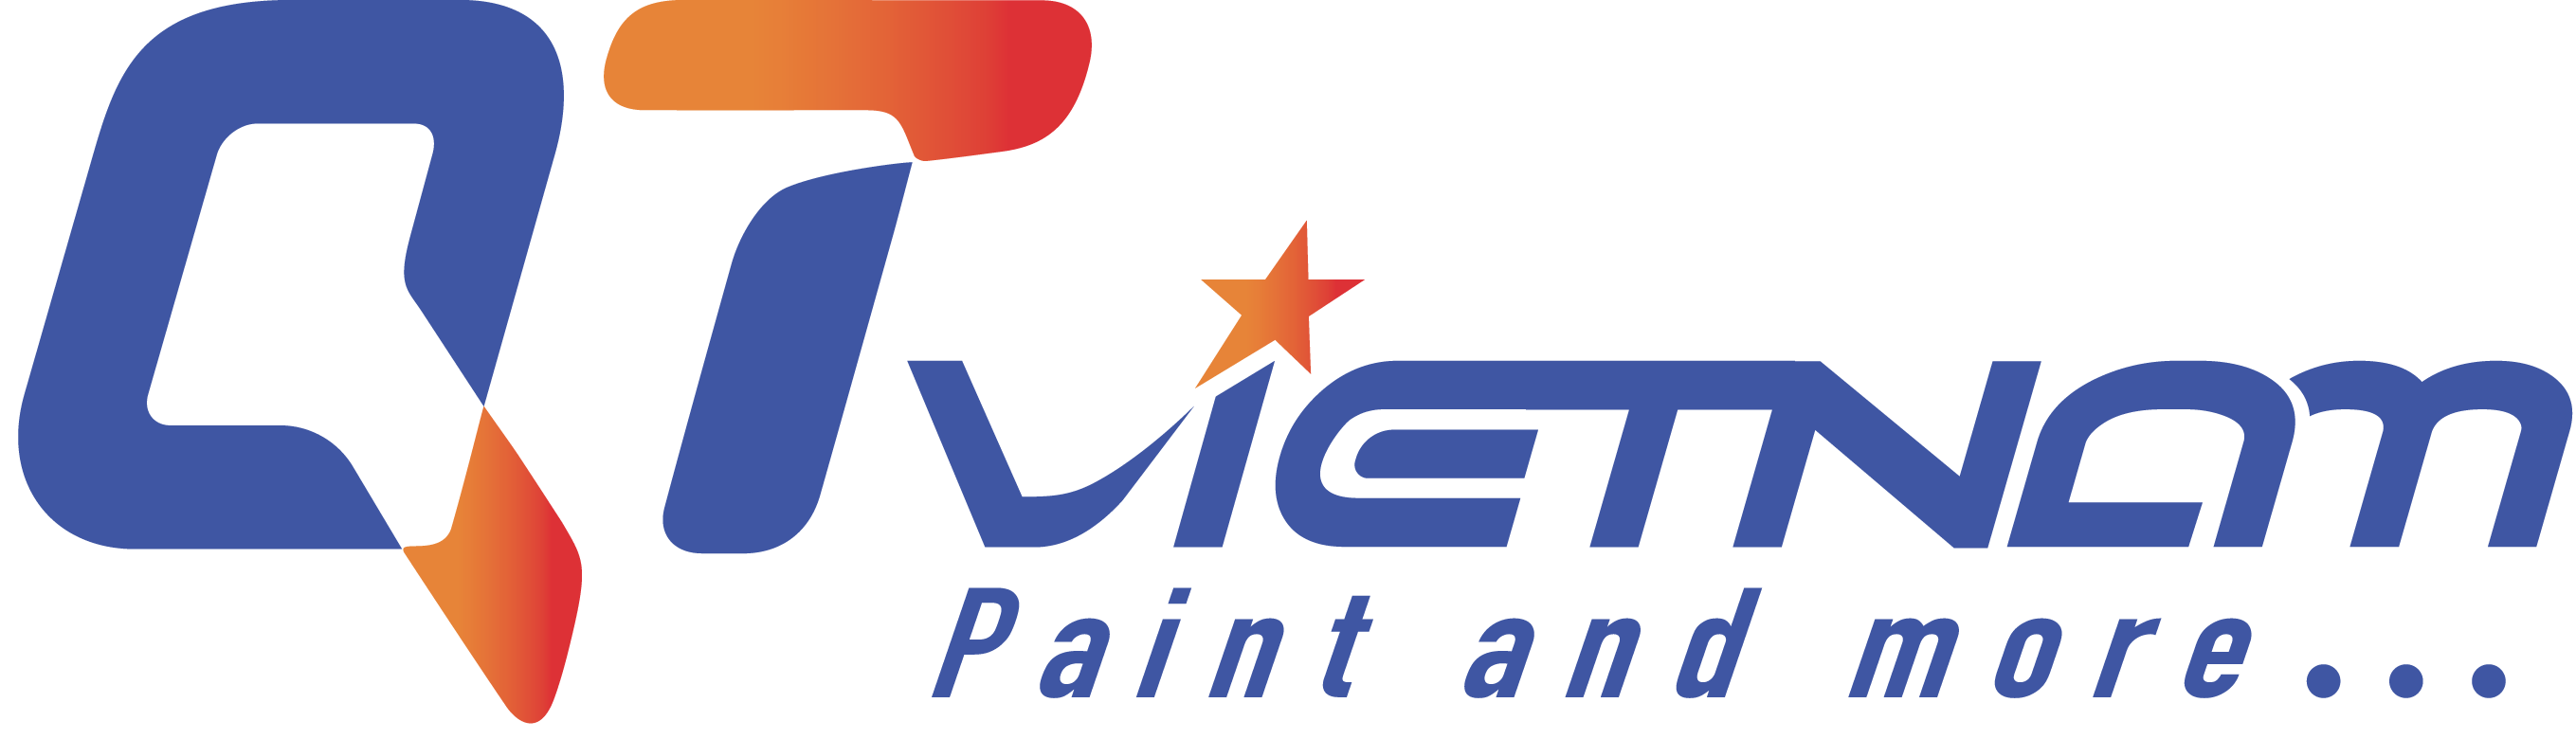 FILE_20191226_114941_QT-Vietnam_logo_final-1